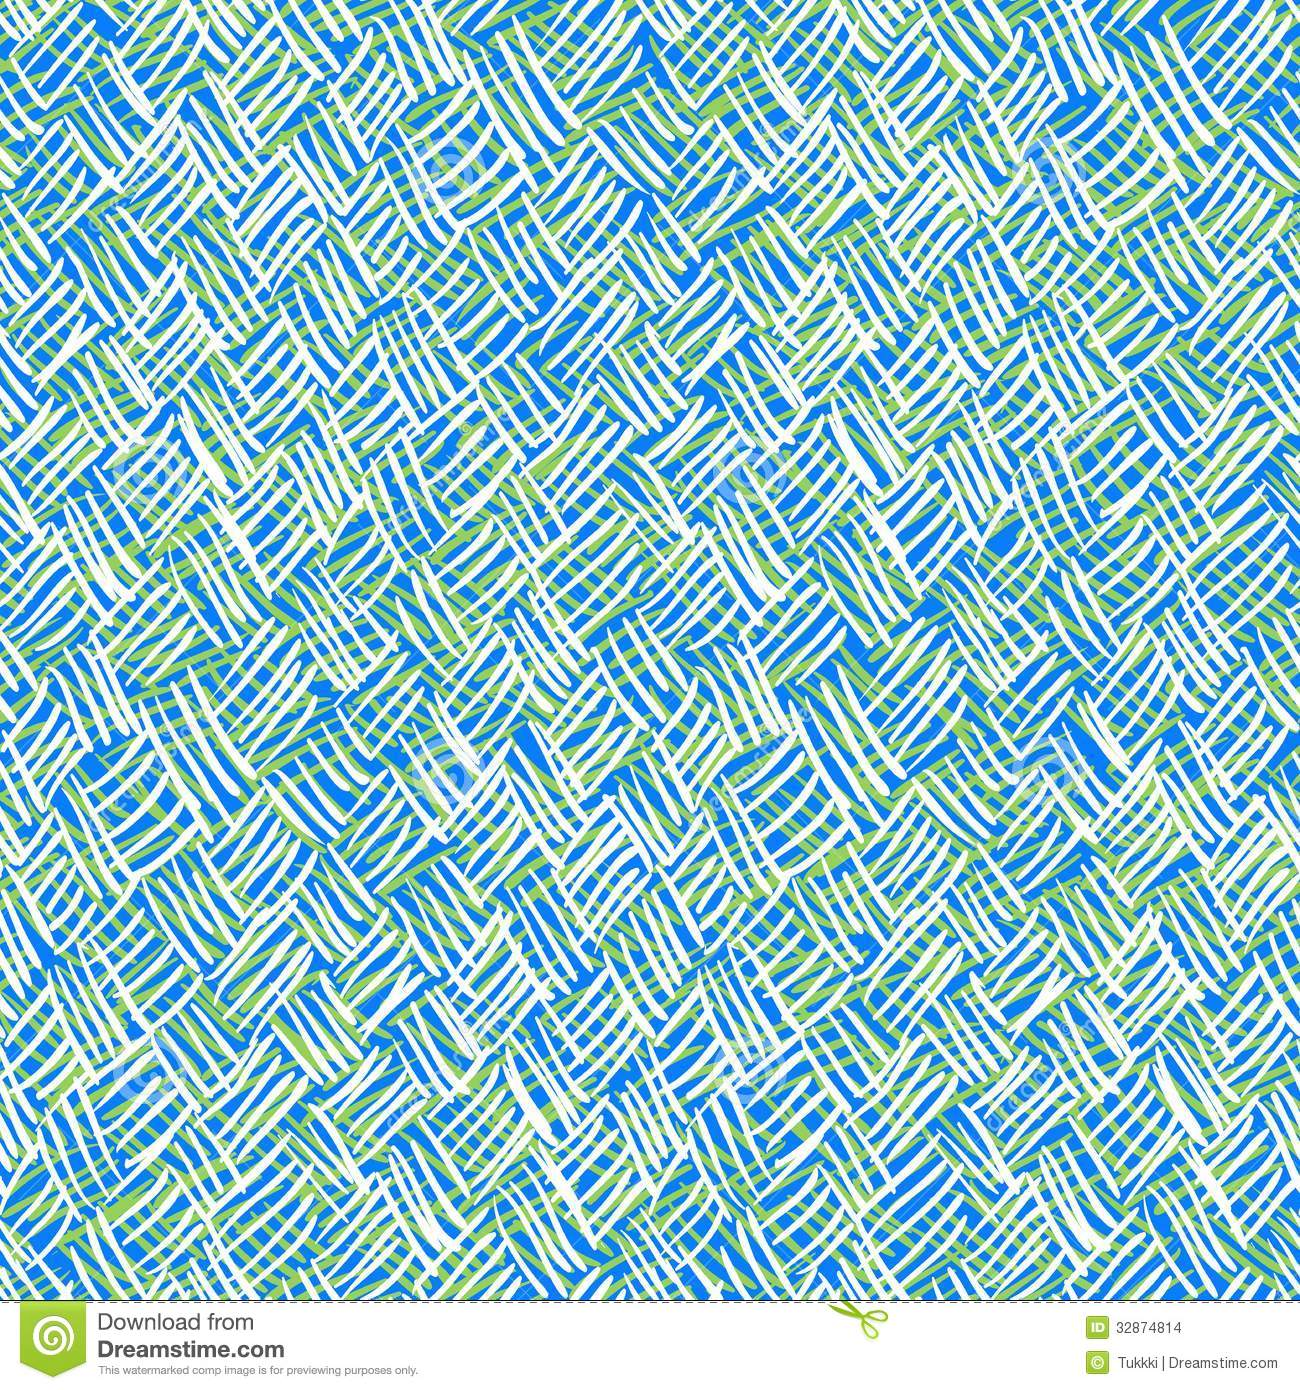 Fall Bohemian Fashion Wallpaper Vector Pattern With Brushed Crossing Thin Lines Stock